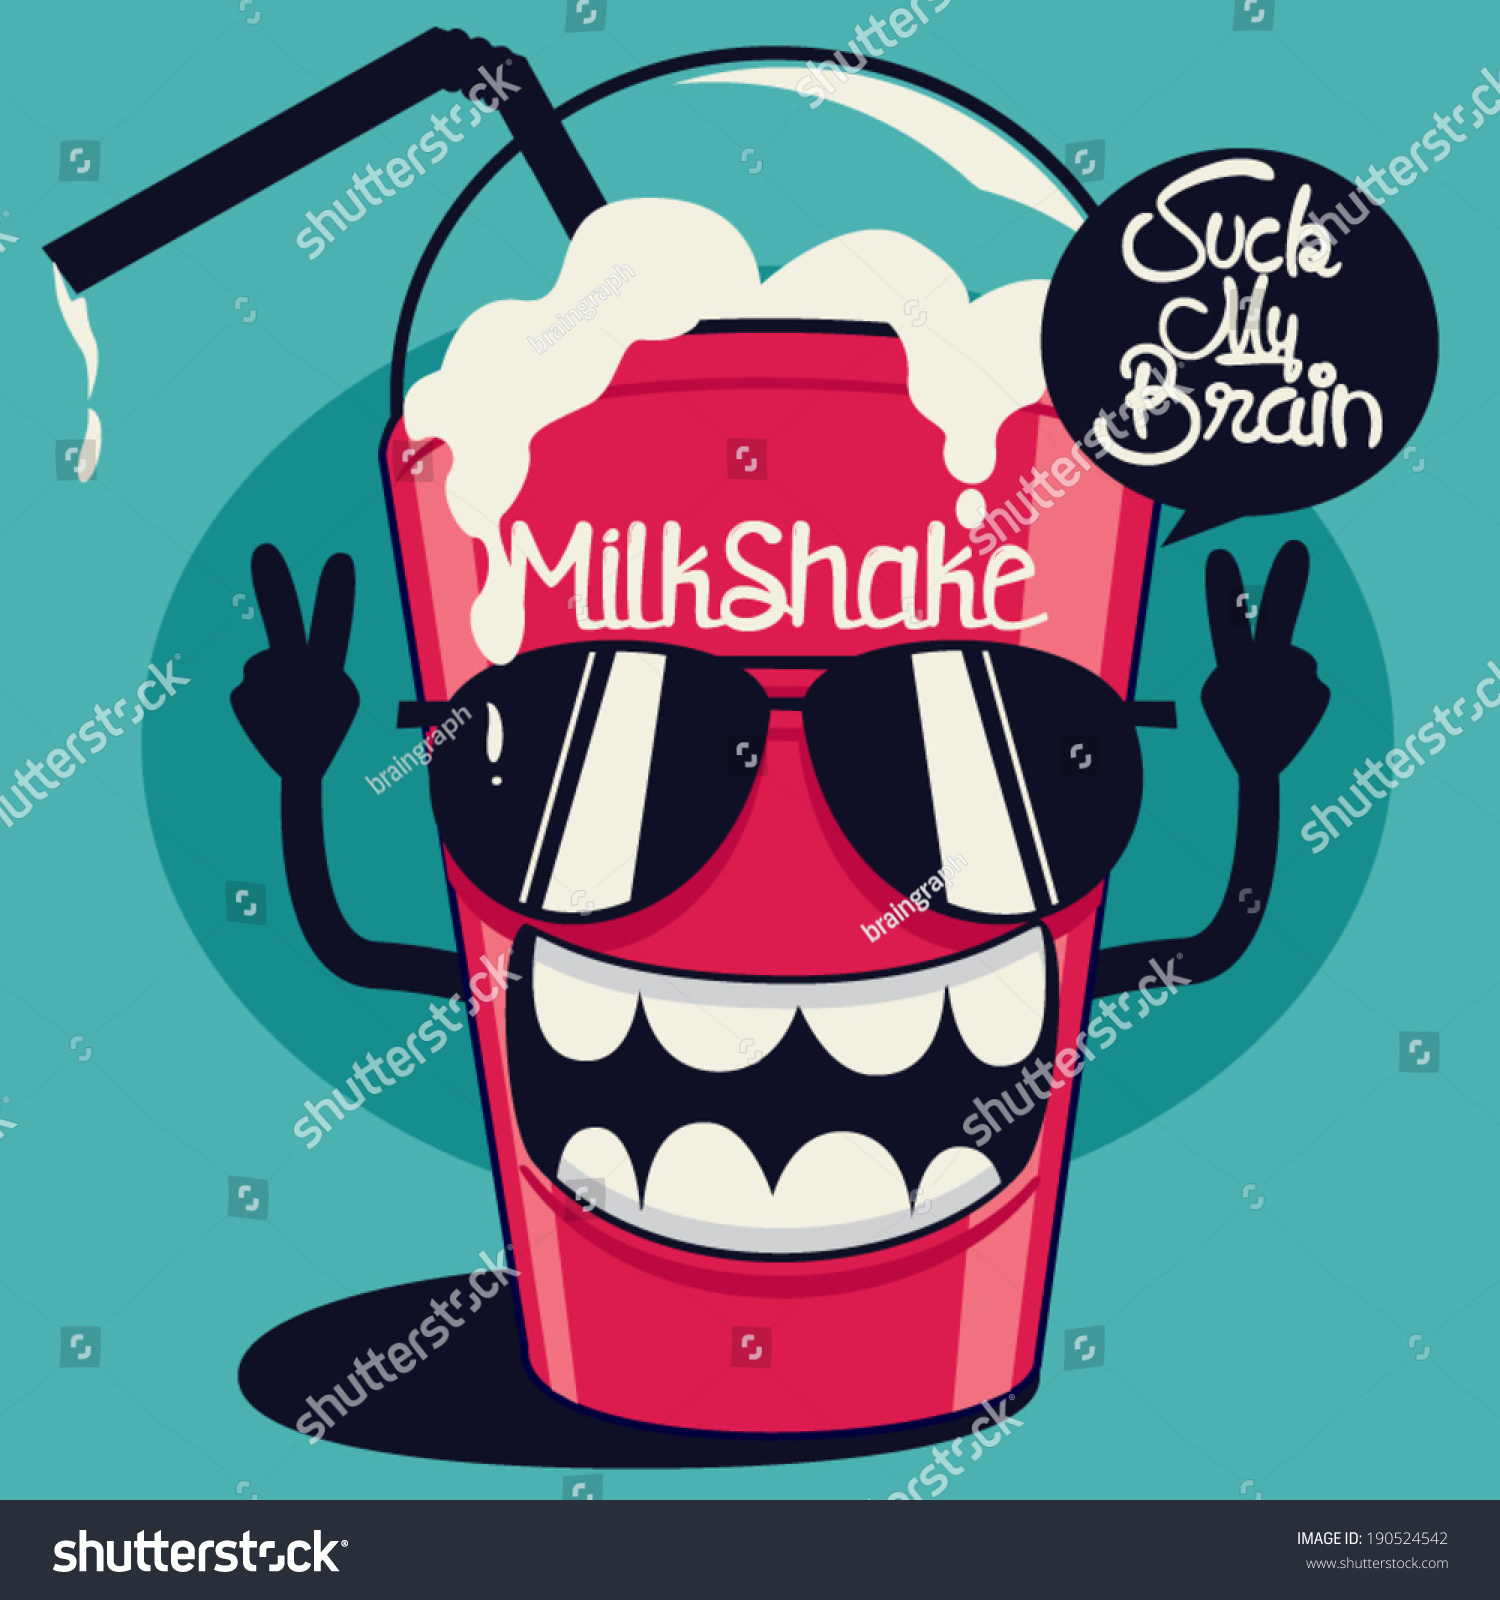 cool milkshake stock vector royalty free 190524542 shutterstock